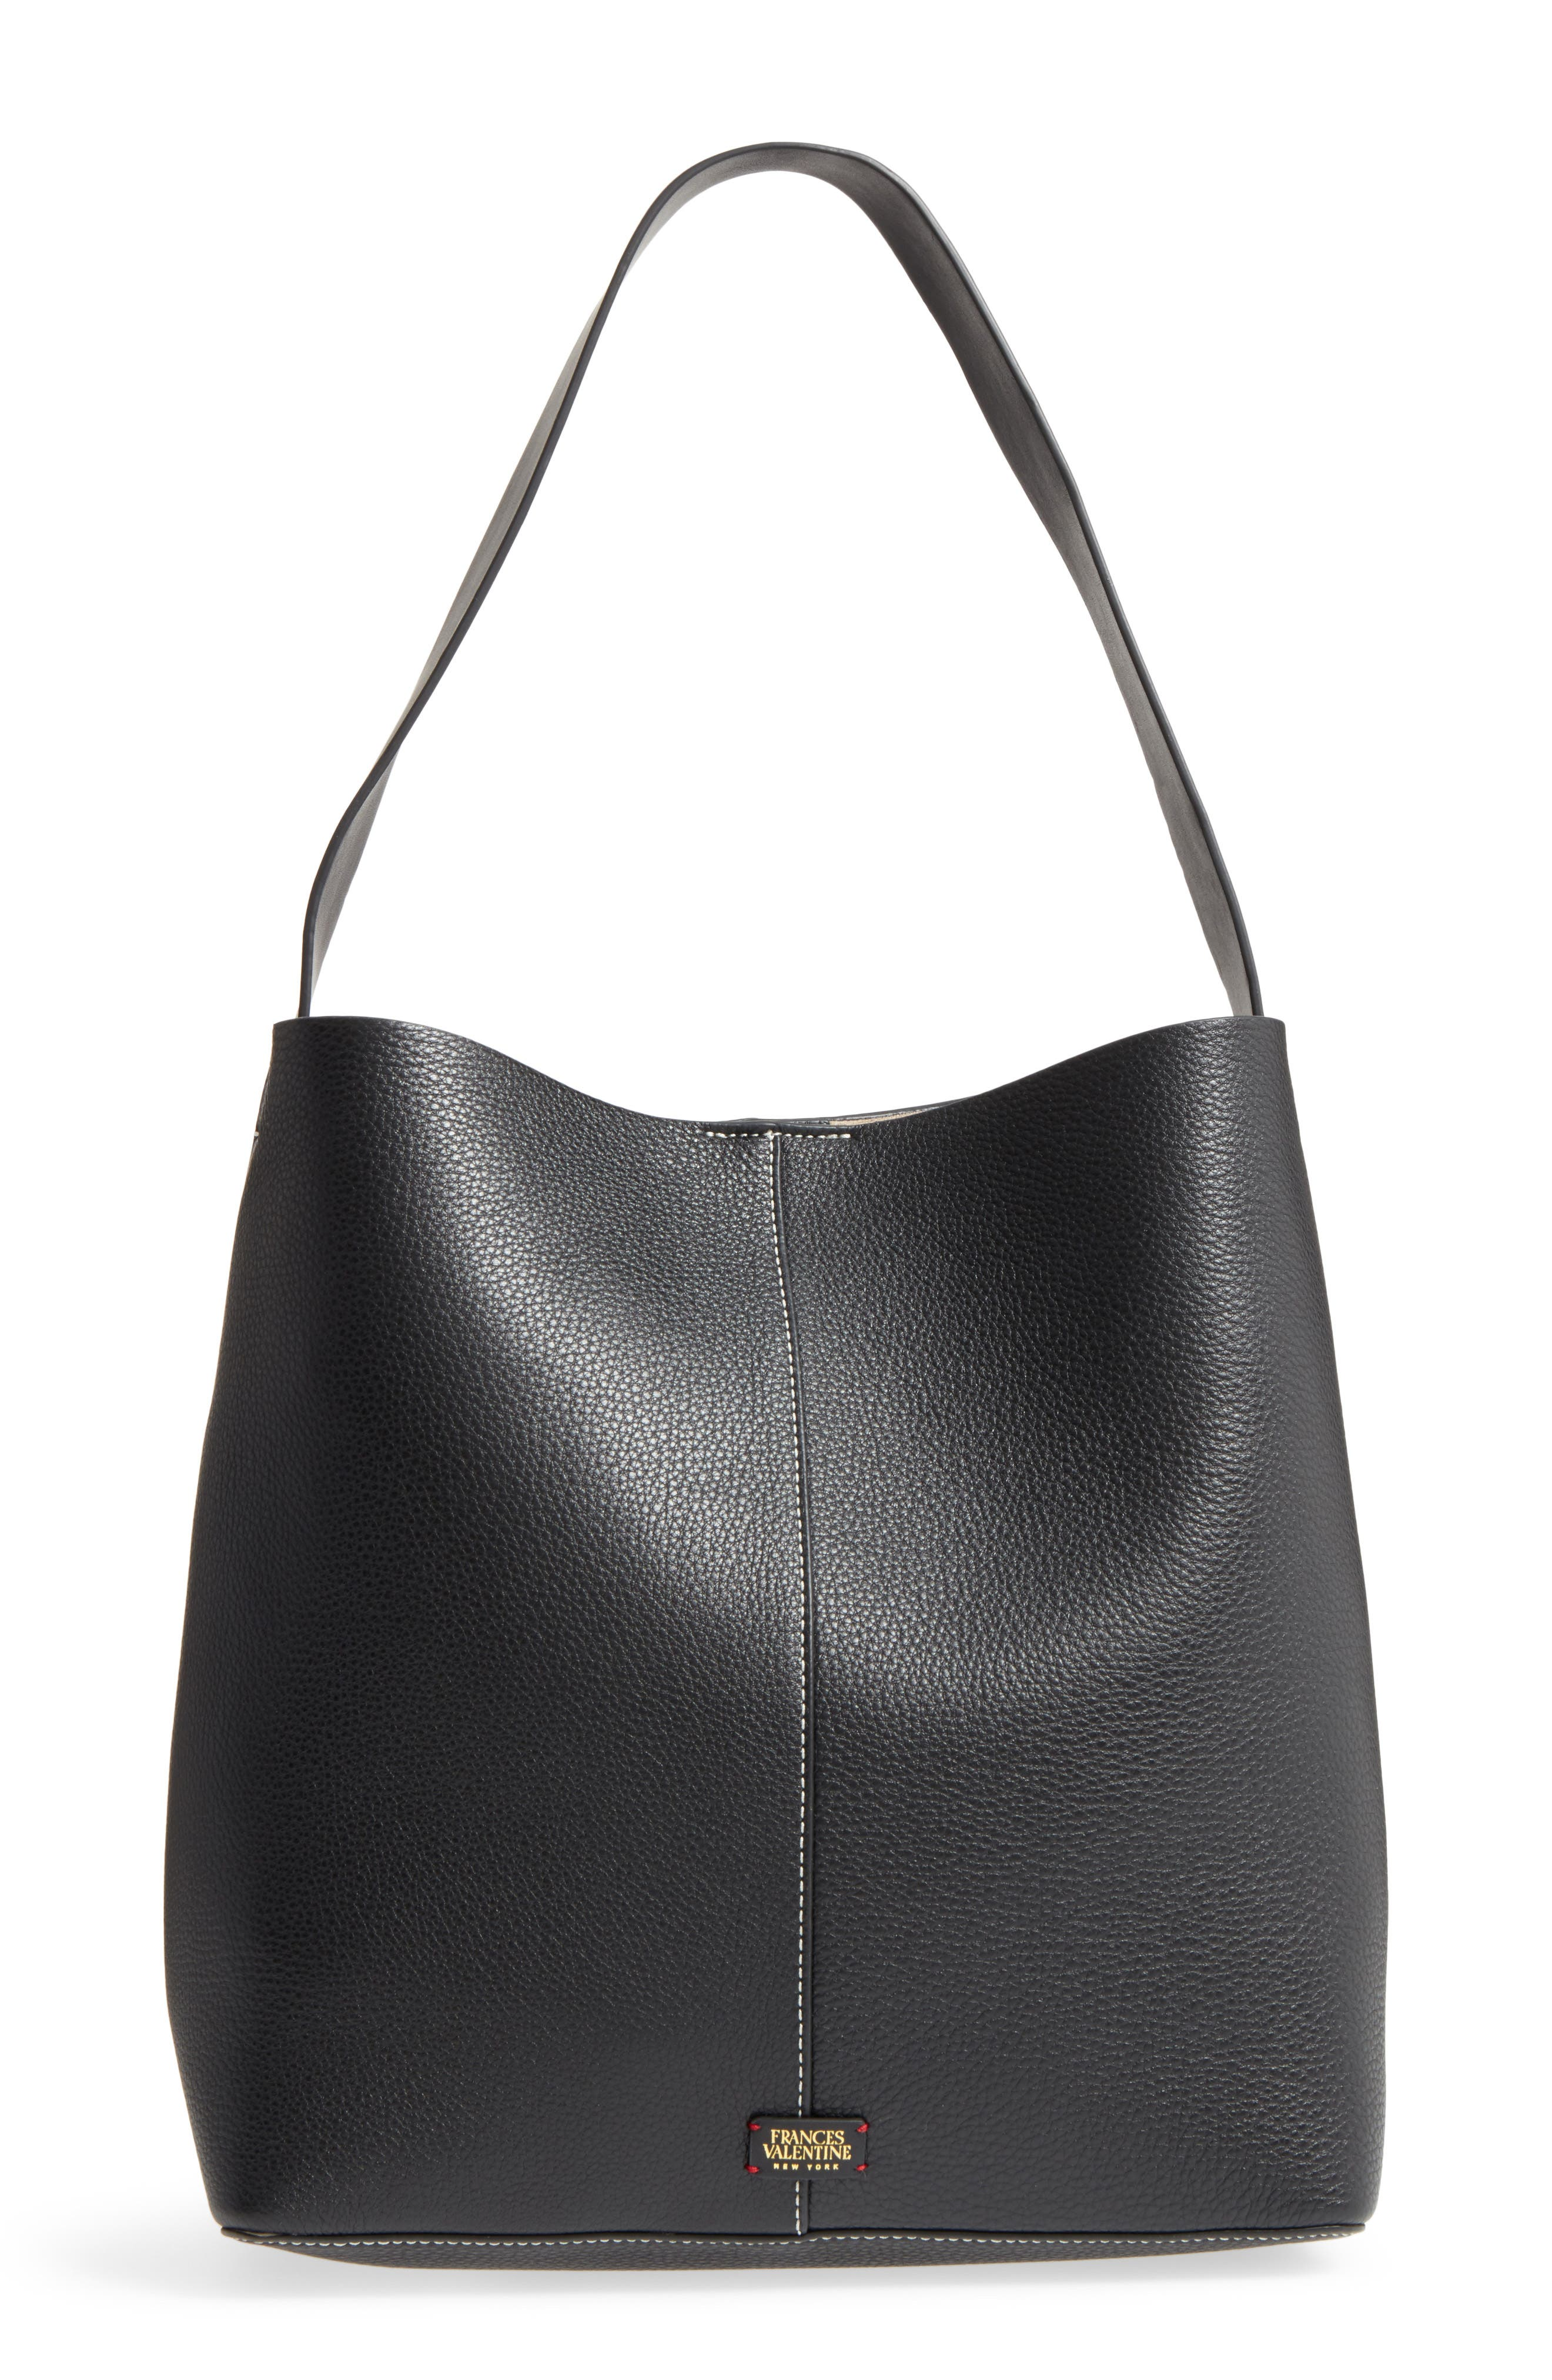 Alternate Image 1 Selected - Frances Valentine Large Leather Shoulder Bag